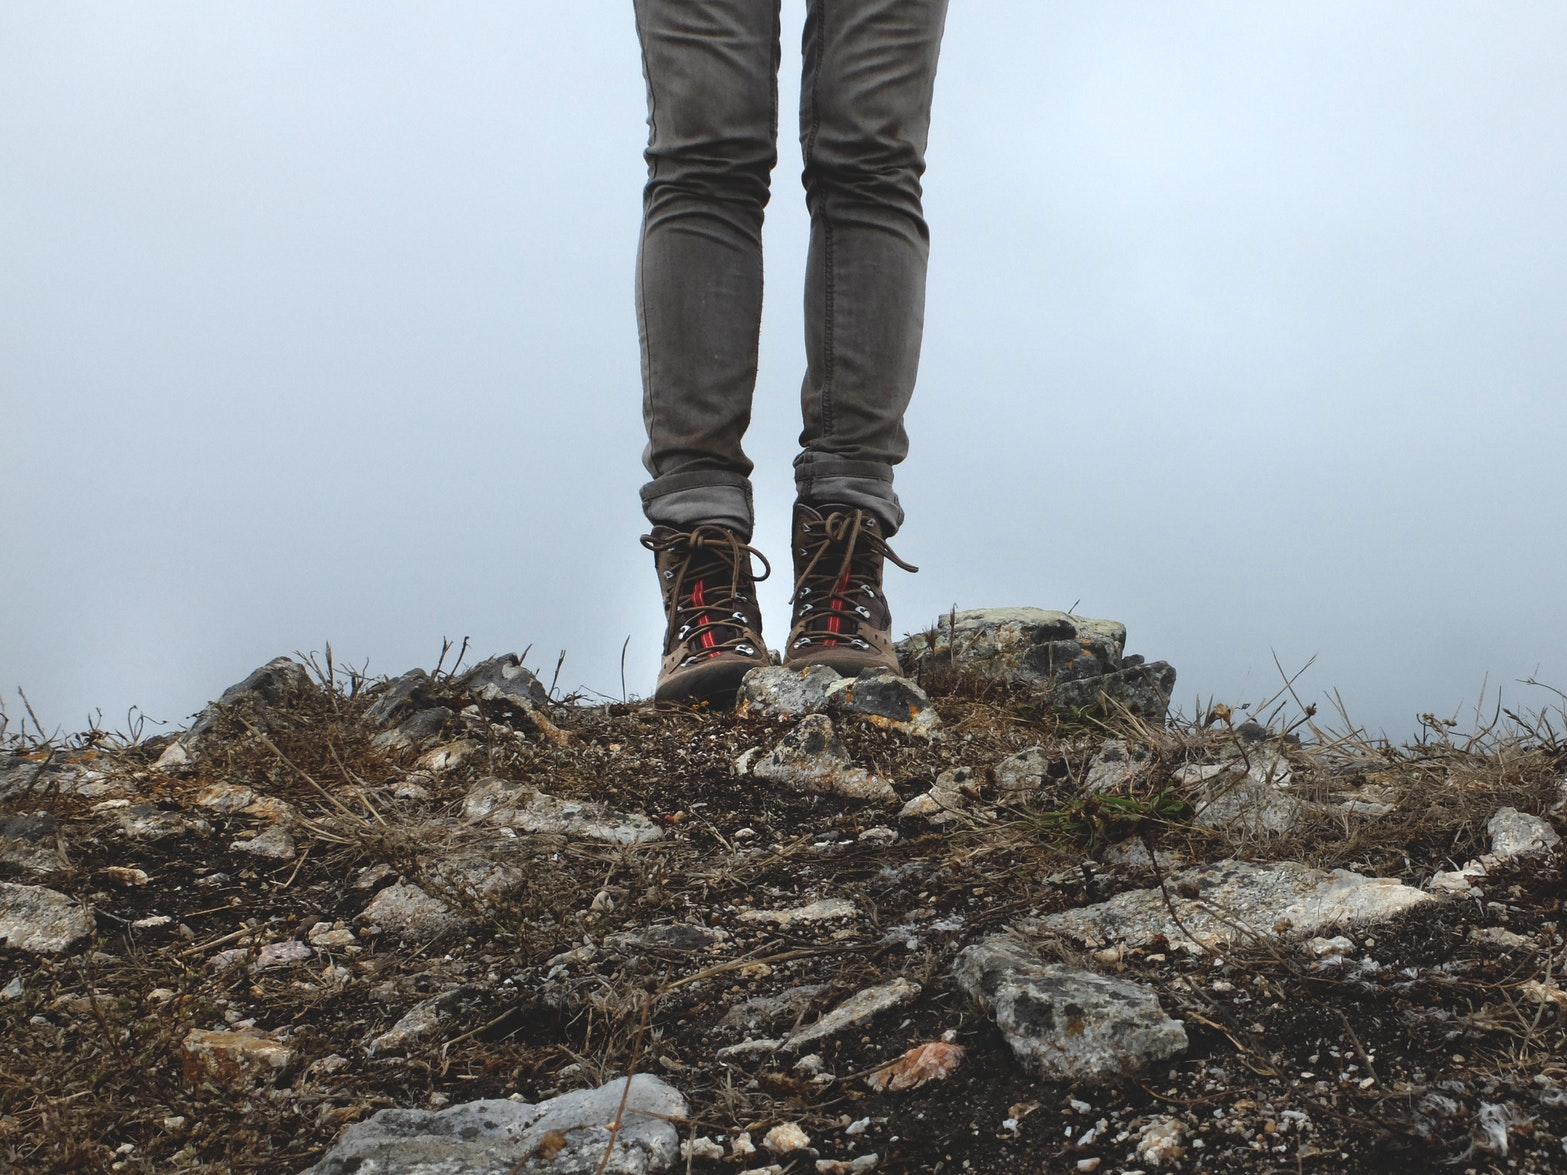 Woman wearing hiking boots standing on rocky path